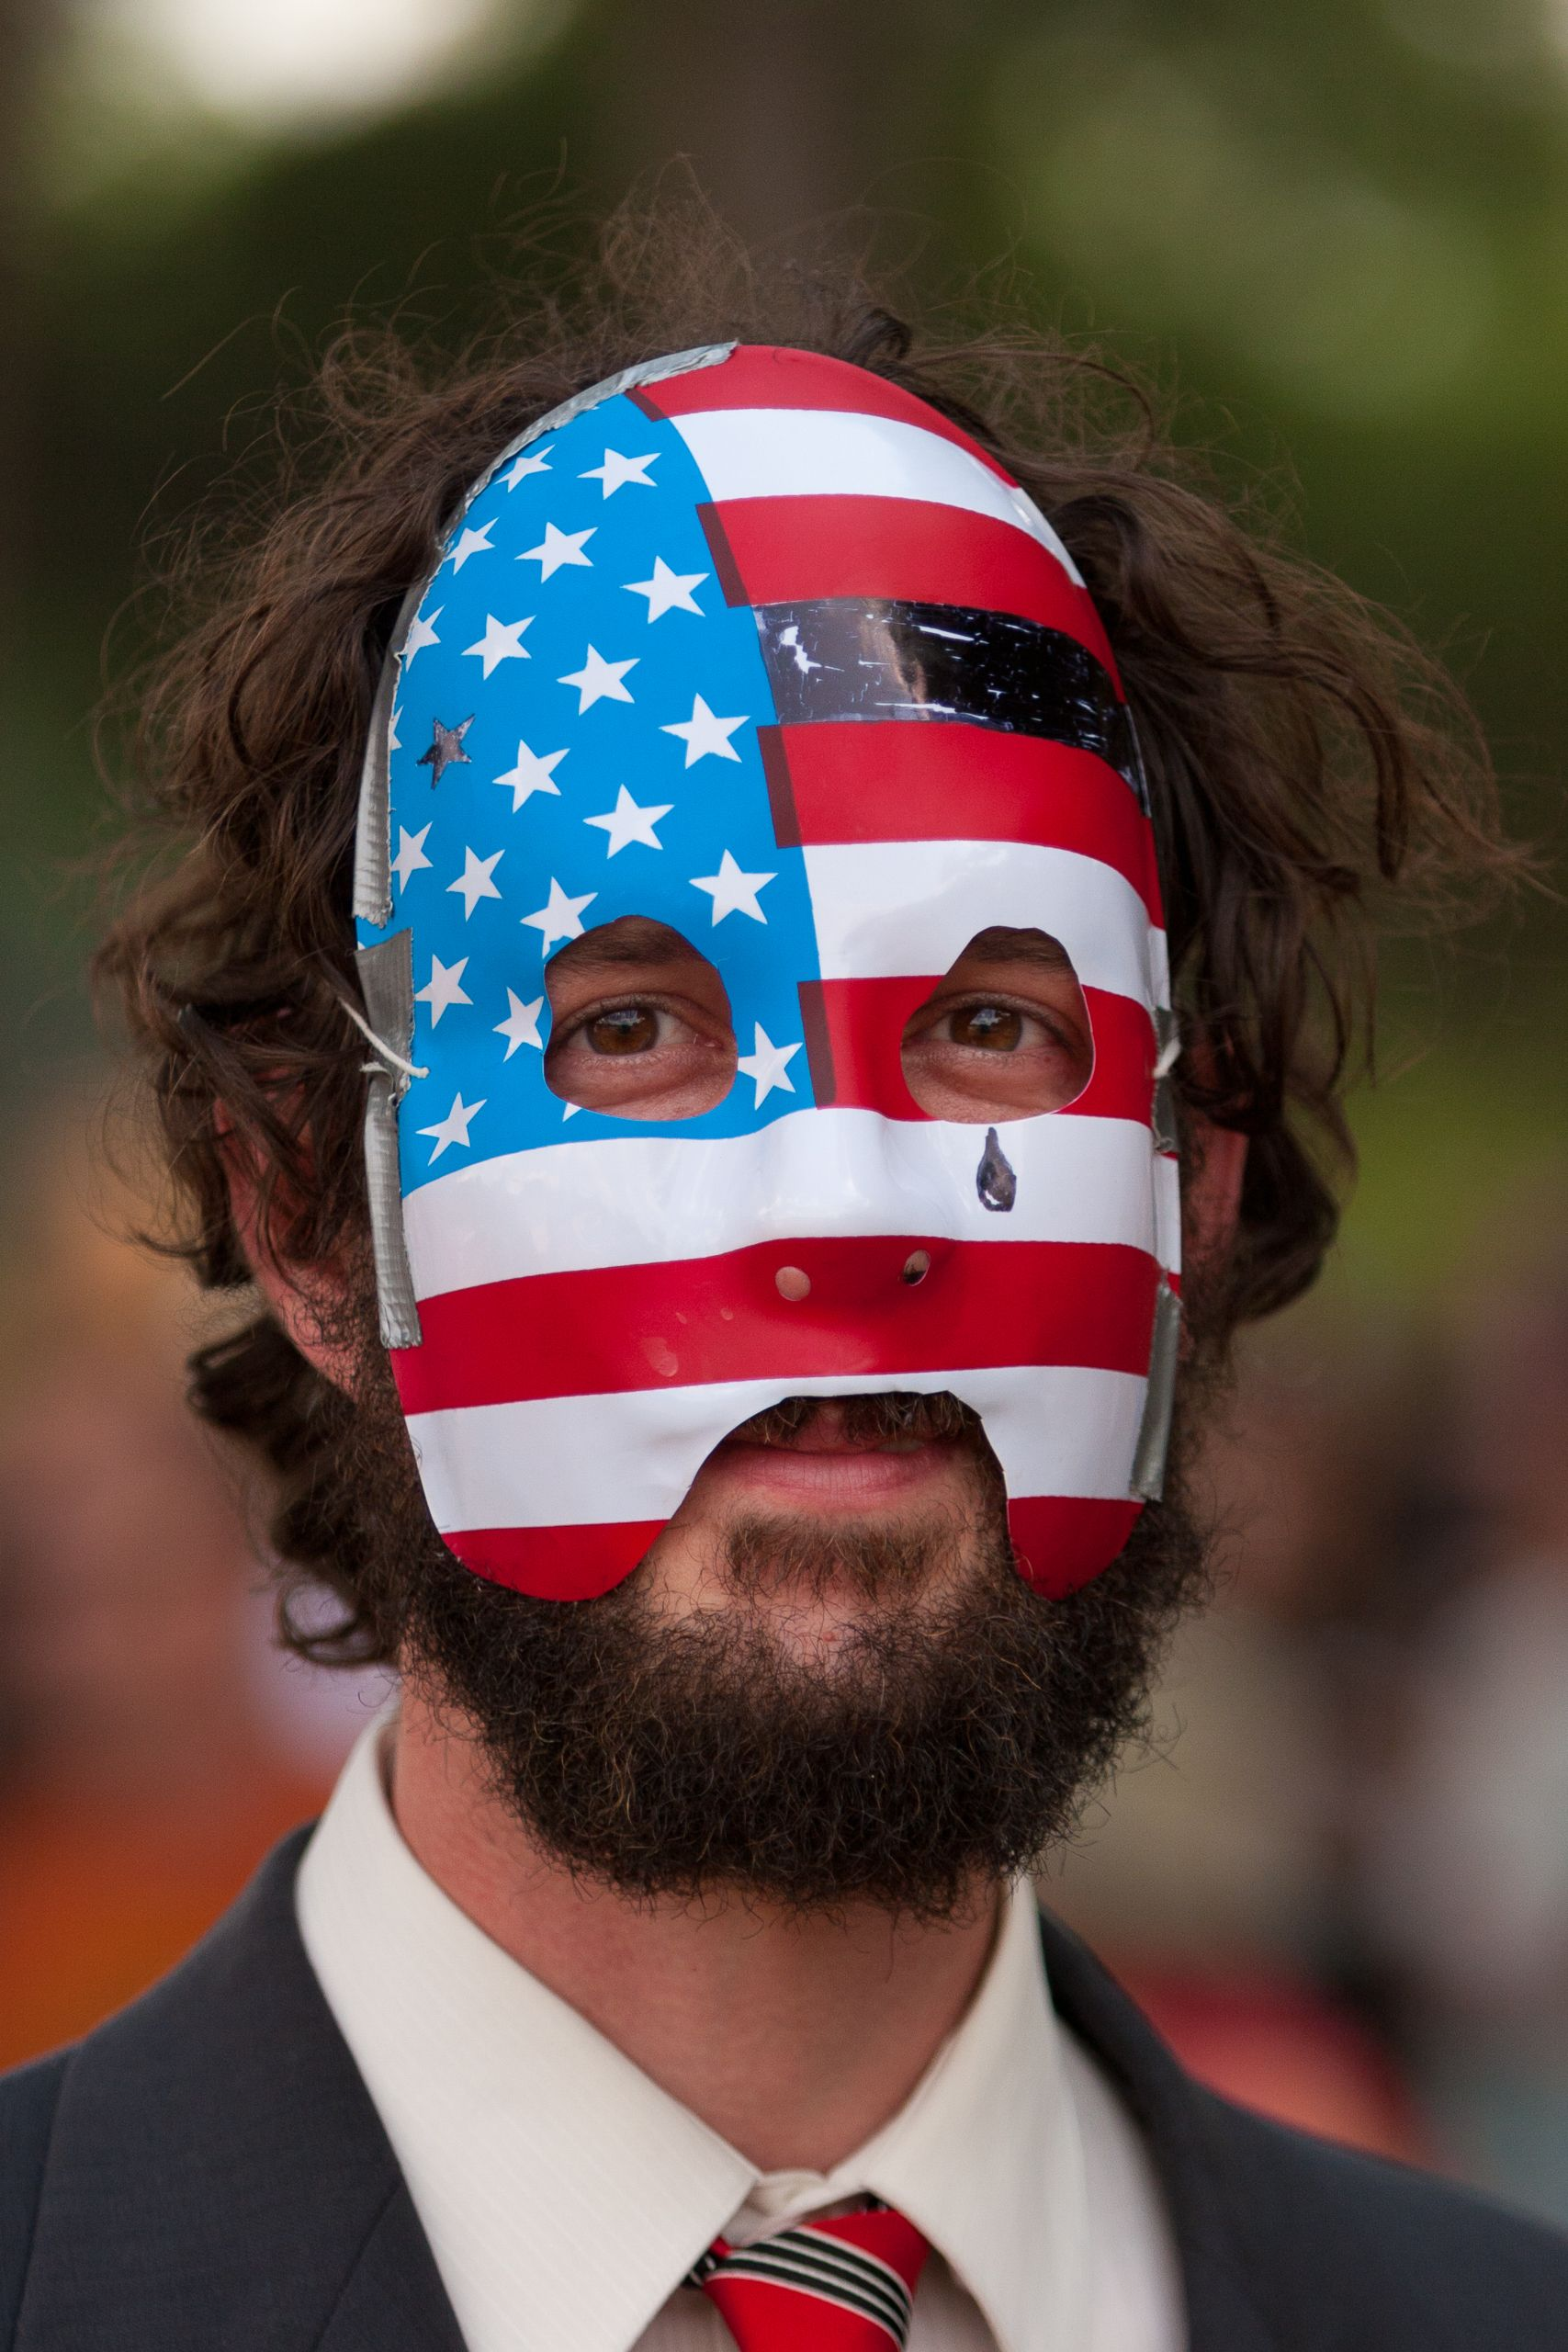 Man in suit and America mask